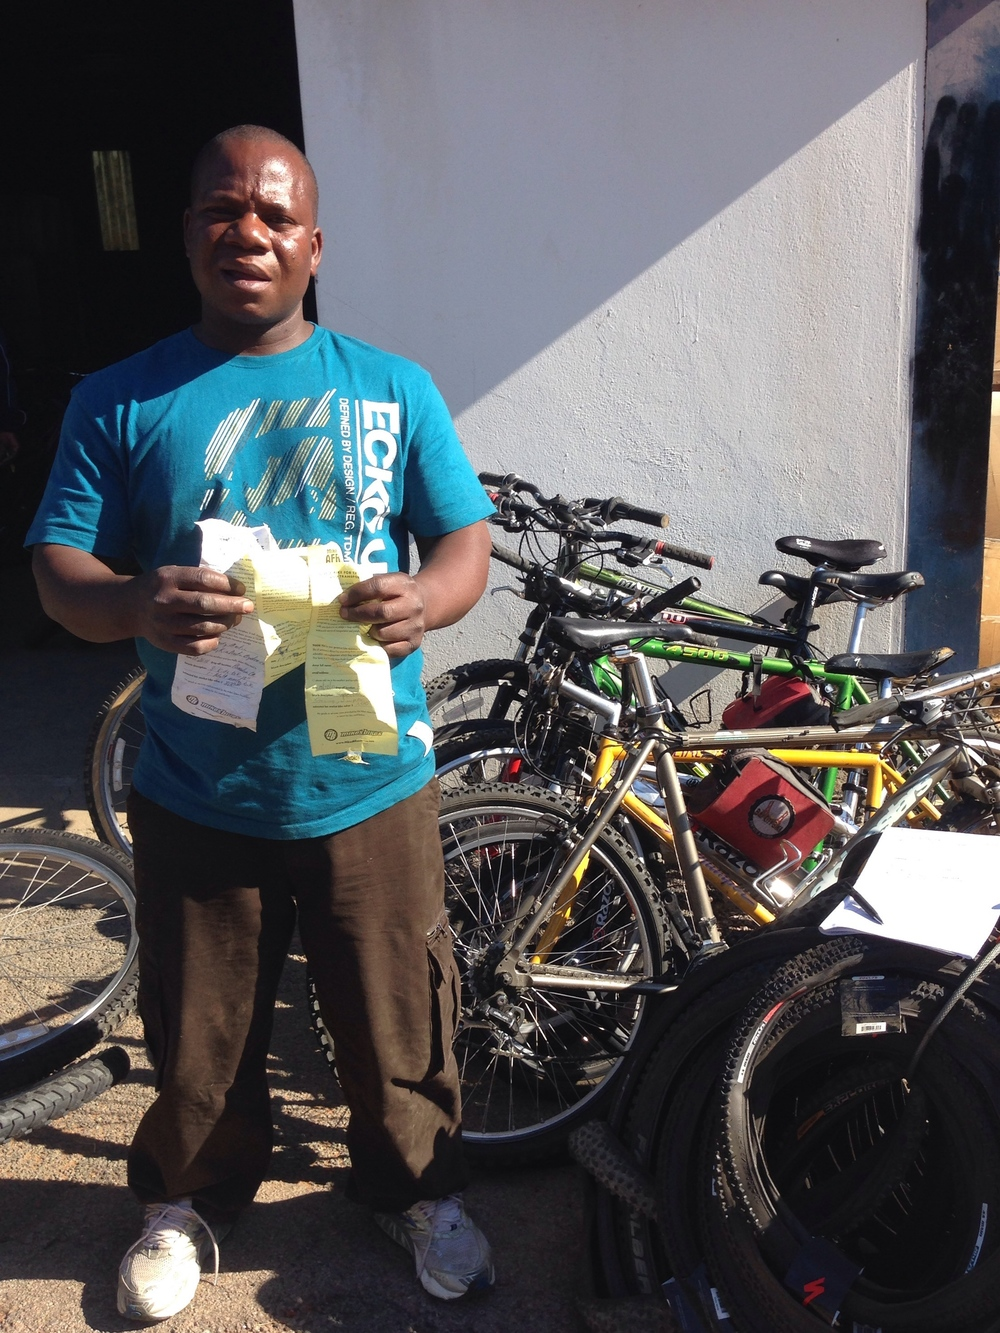 Charles with his new stock and slips from our bike donors in California.